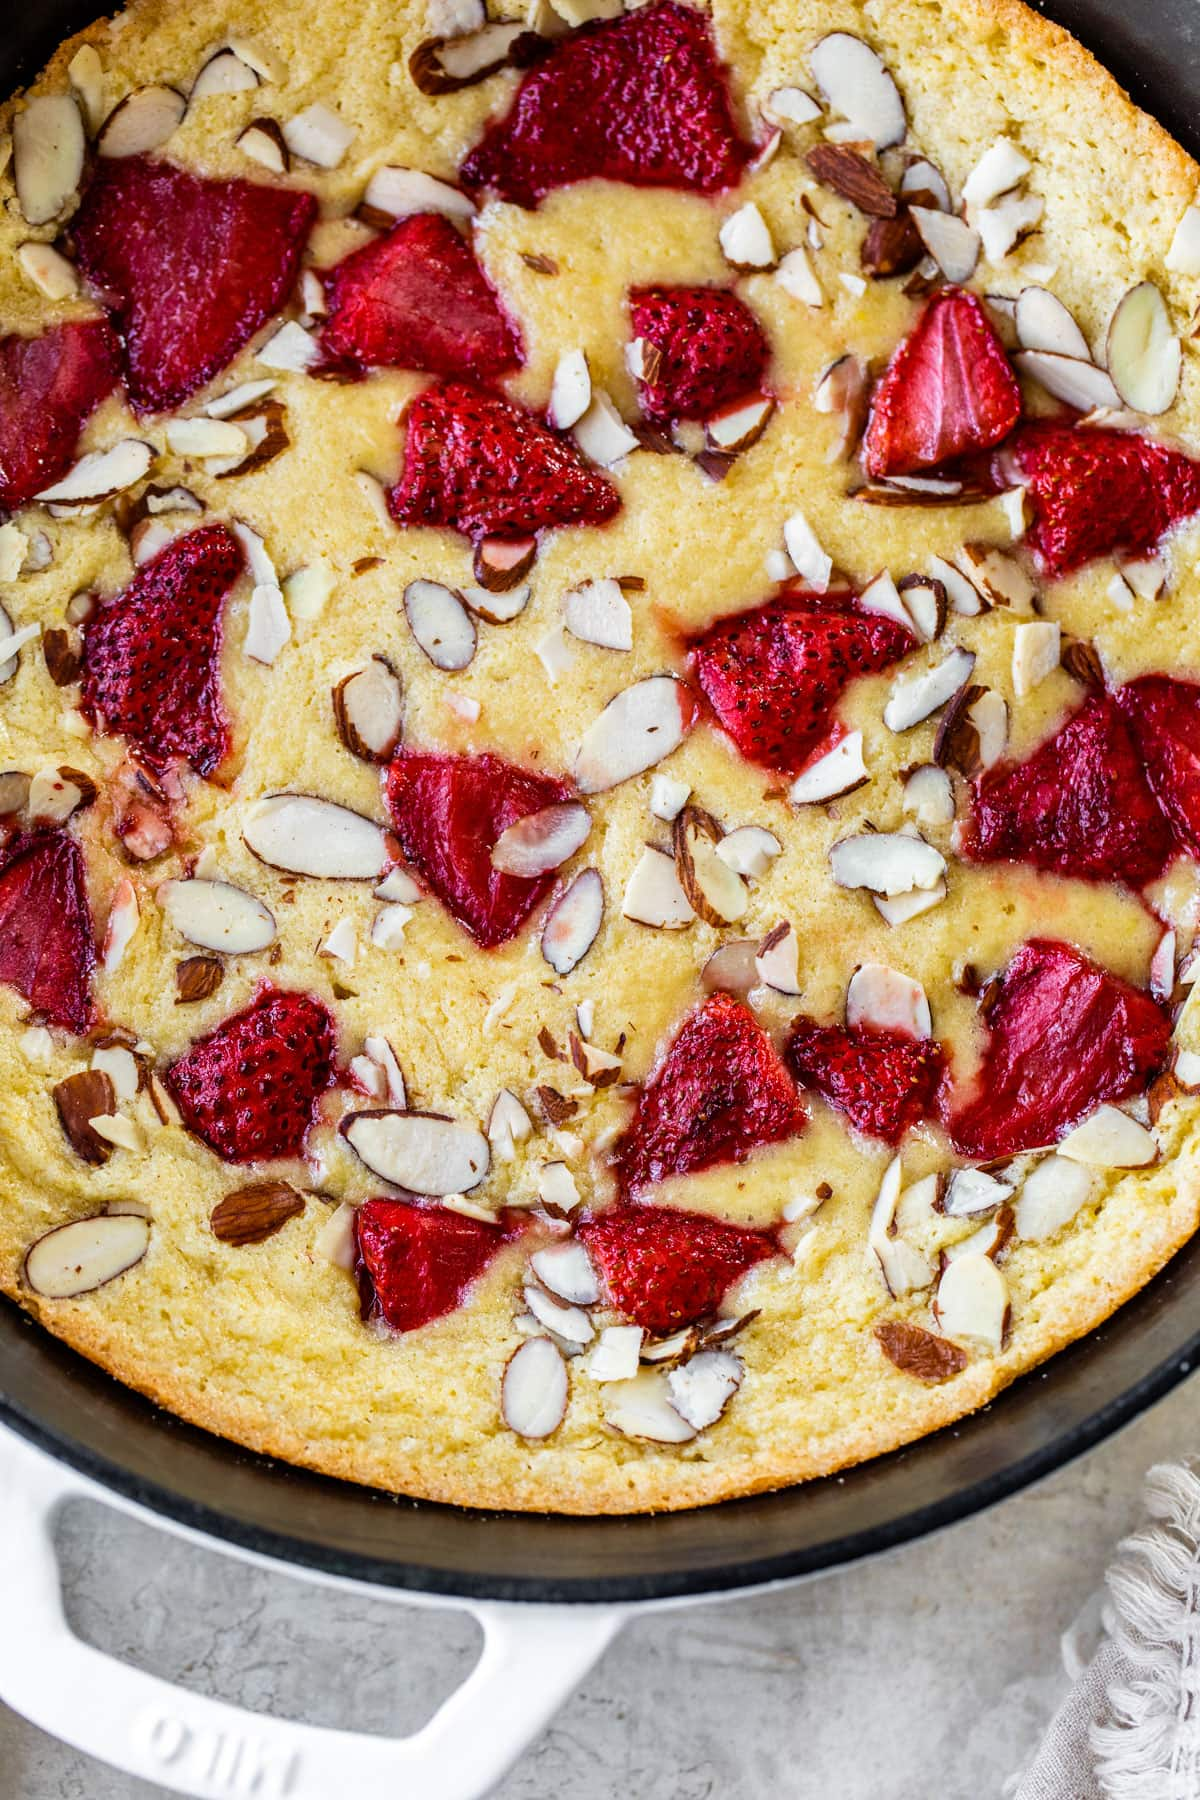 Strawberry Almond Skillet Cake. An ultra moist one-bowl almond cake topped with roasted strawberries.